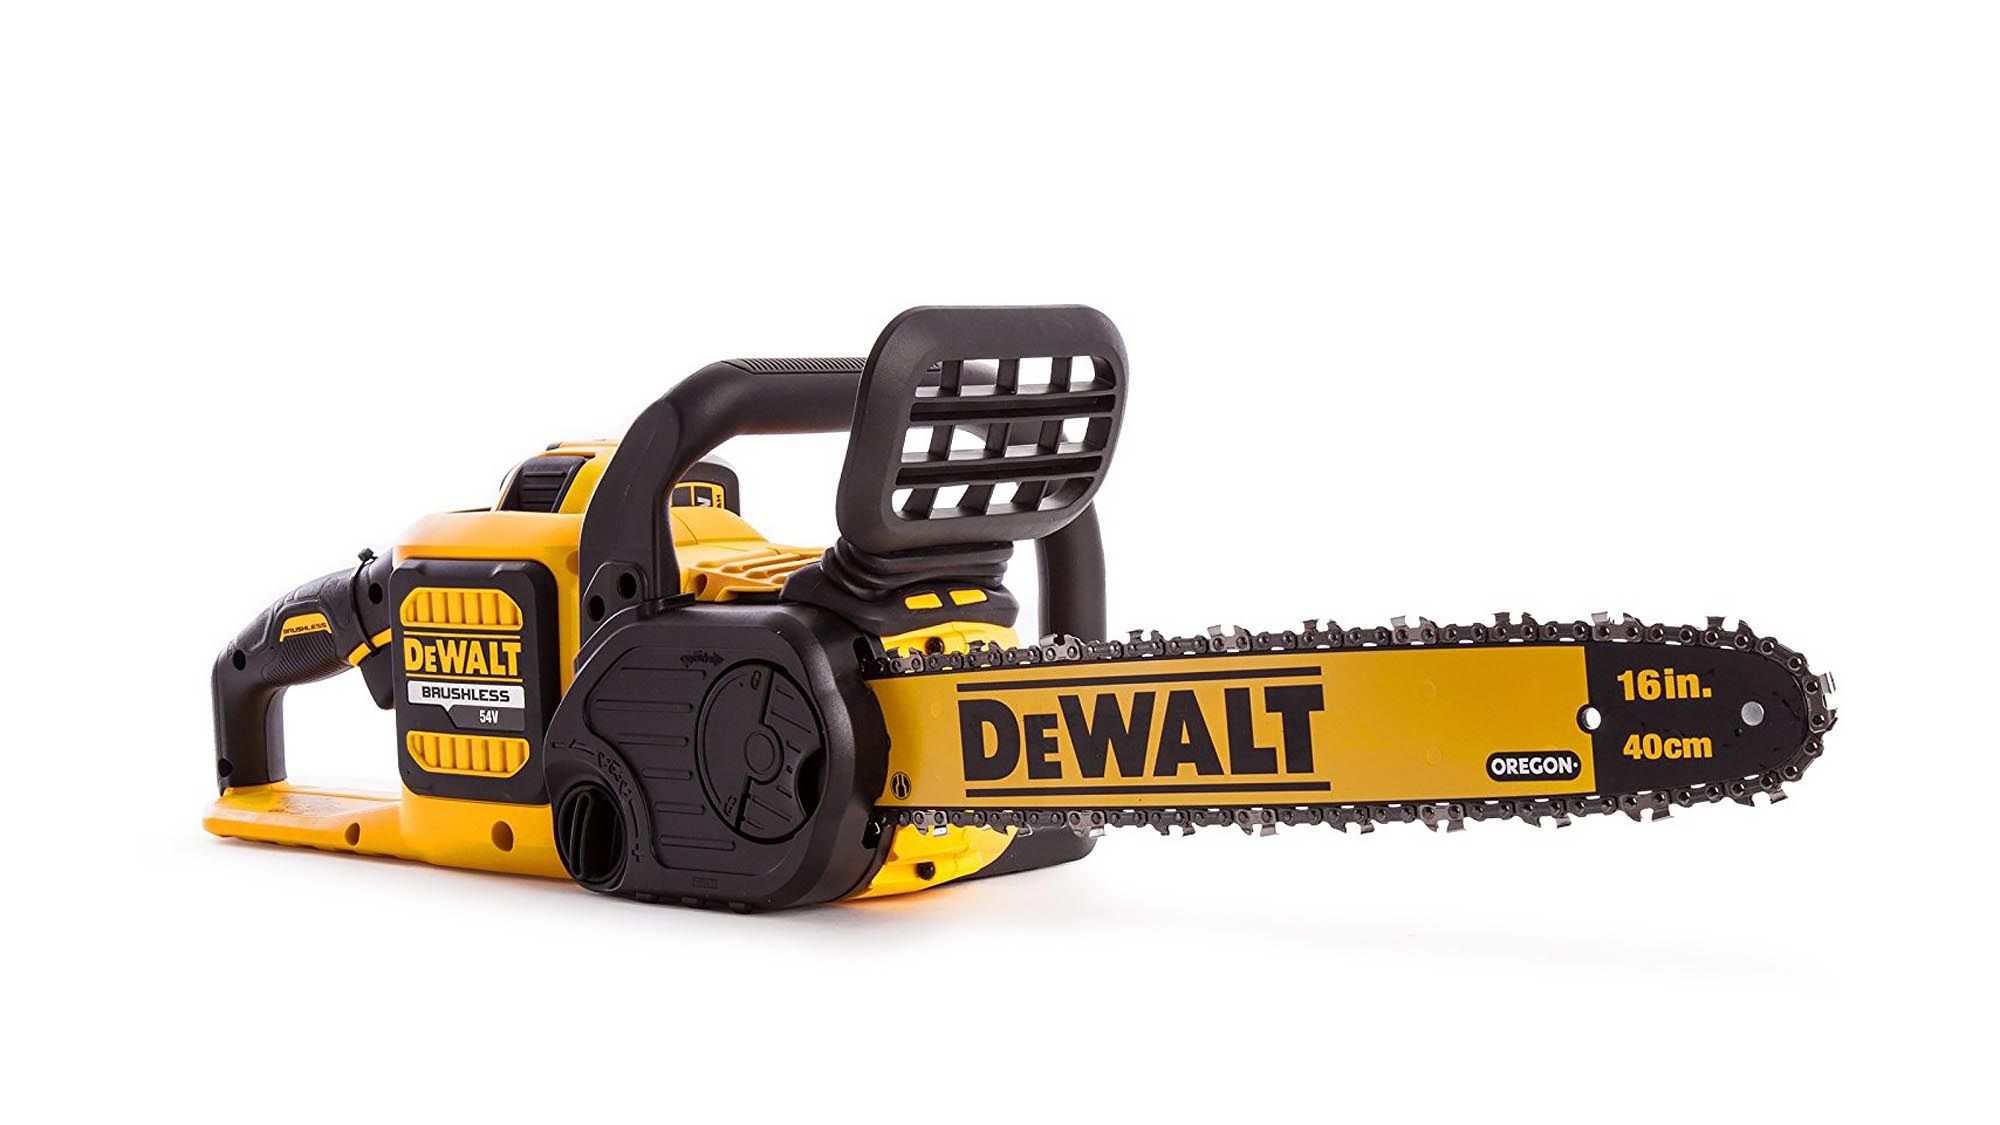 Best chainsaws make light work of heavy pruning jobs from 50 the dcm575 is an awesome chainsaw although cordless it doesnt compromise on power at all indeed its 15ms chain speed is the fastest here keyboard keysfo Gallery